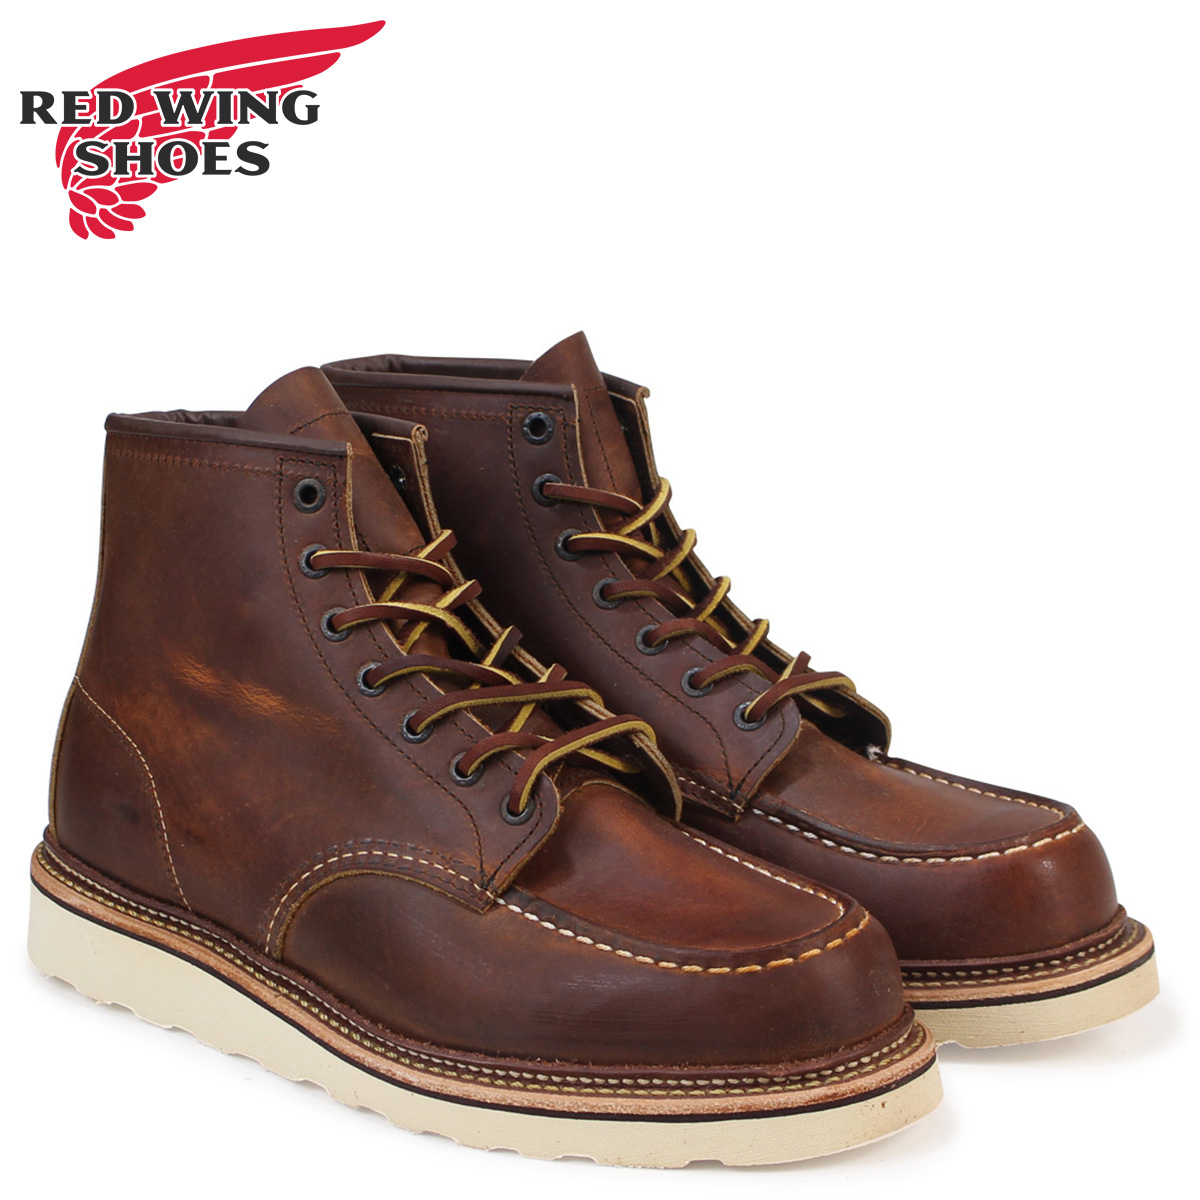 ca975f9fd81b «Booking products» «10   22 around stock» Redwing RED WING 6 inch boots  モカシントゥ 1907 6inch Moc Toe Boots D wise カッパーラフ タフレザー mens Made in ...